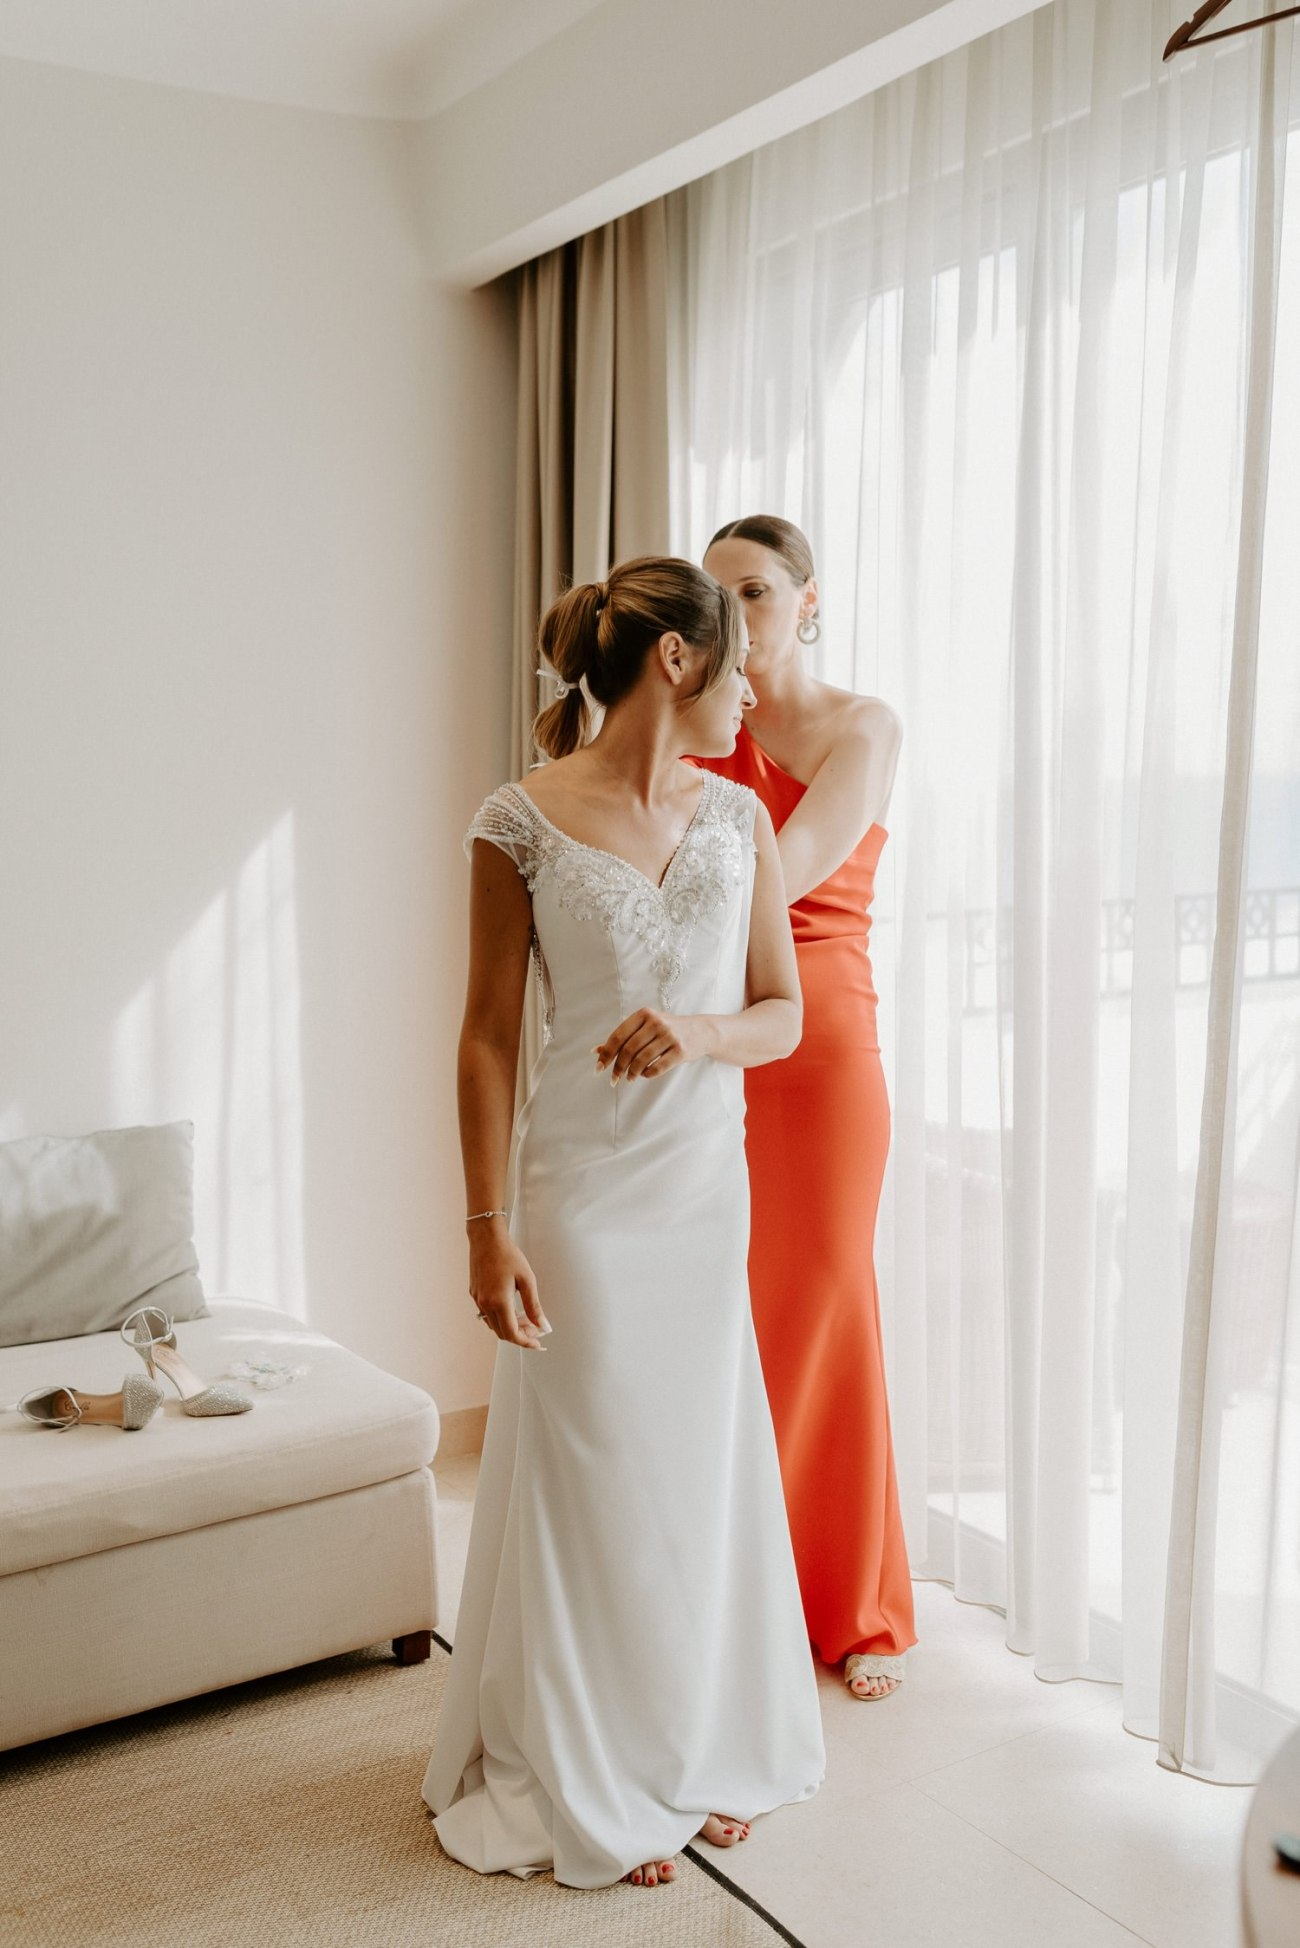 Cancun Destination Wedding Mexico Tulum Wedding Photographer Anais Possamai Photography 017